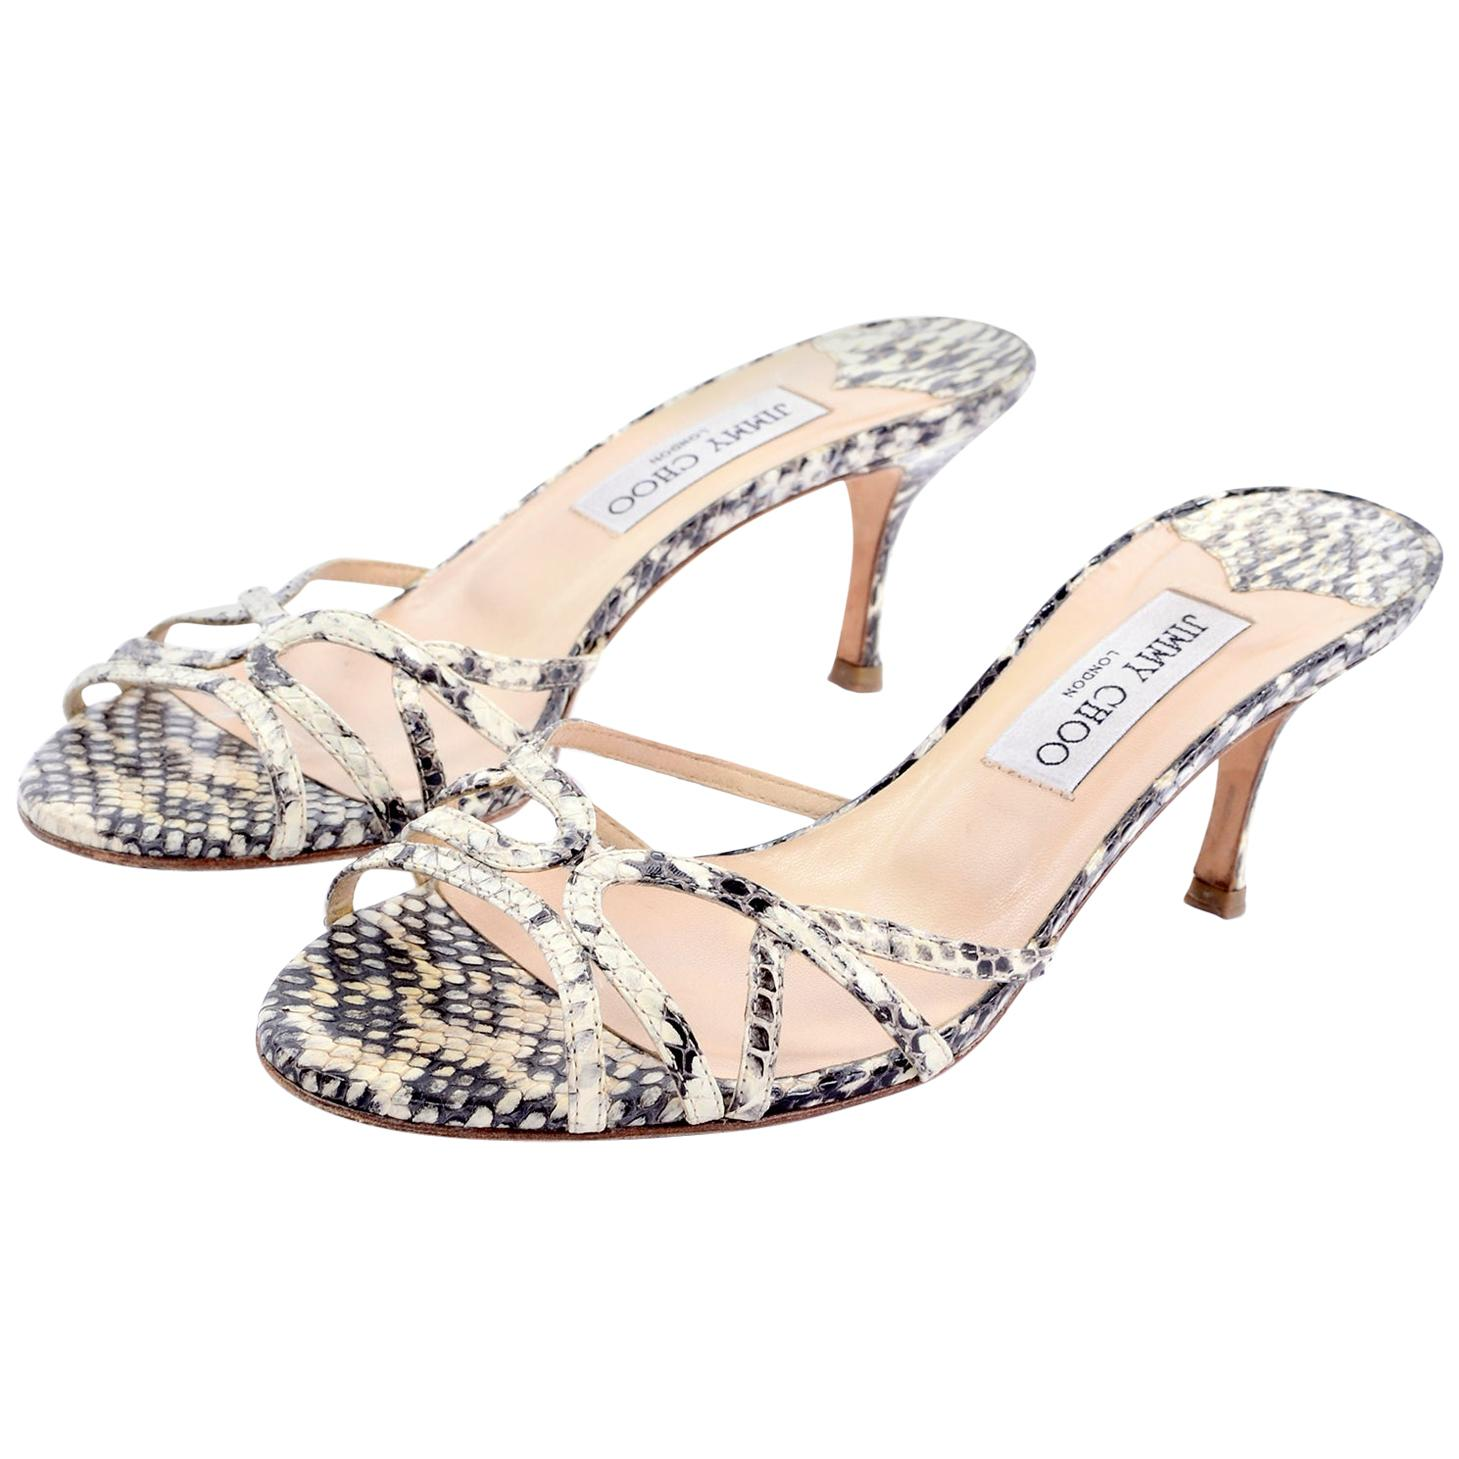 """Jimmy Choo Shoes Snakeskin Sandals With 3"""" Heel Size 38"""